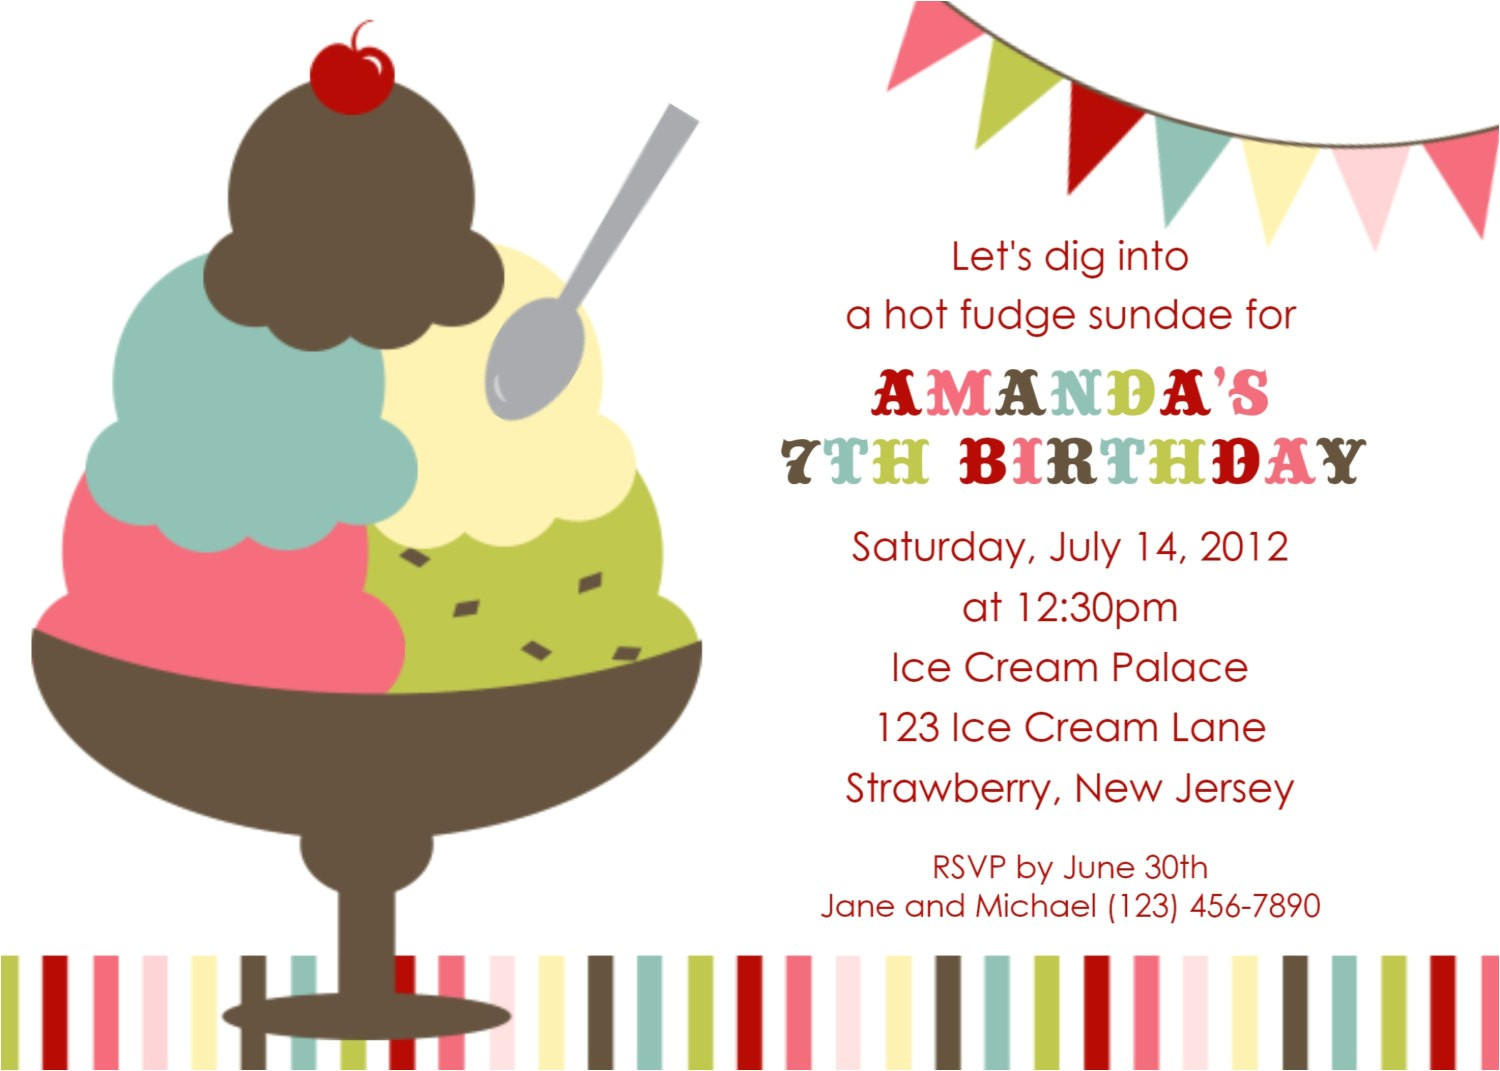 Ice Cream Sundae Party Invitations Ice Cream social Invitation